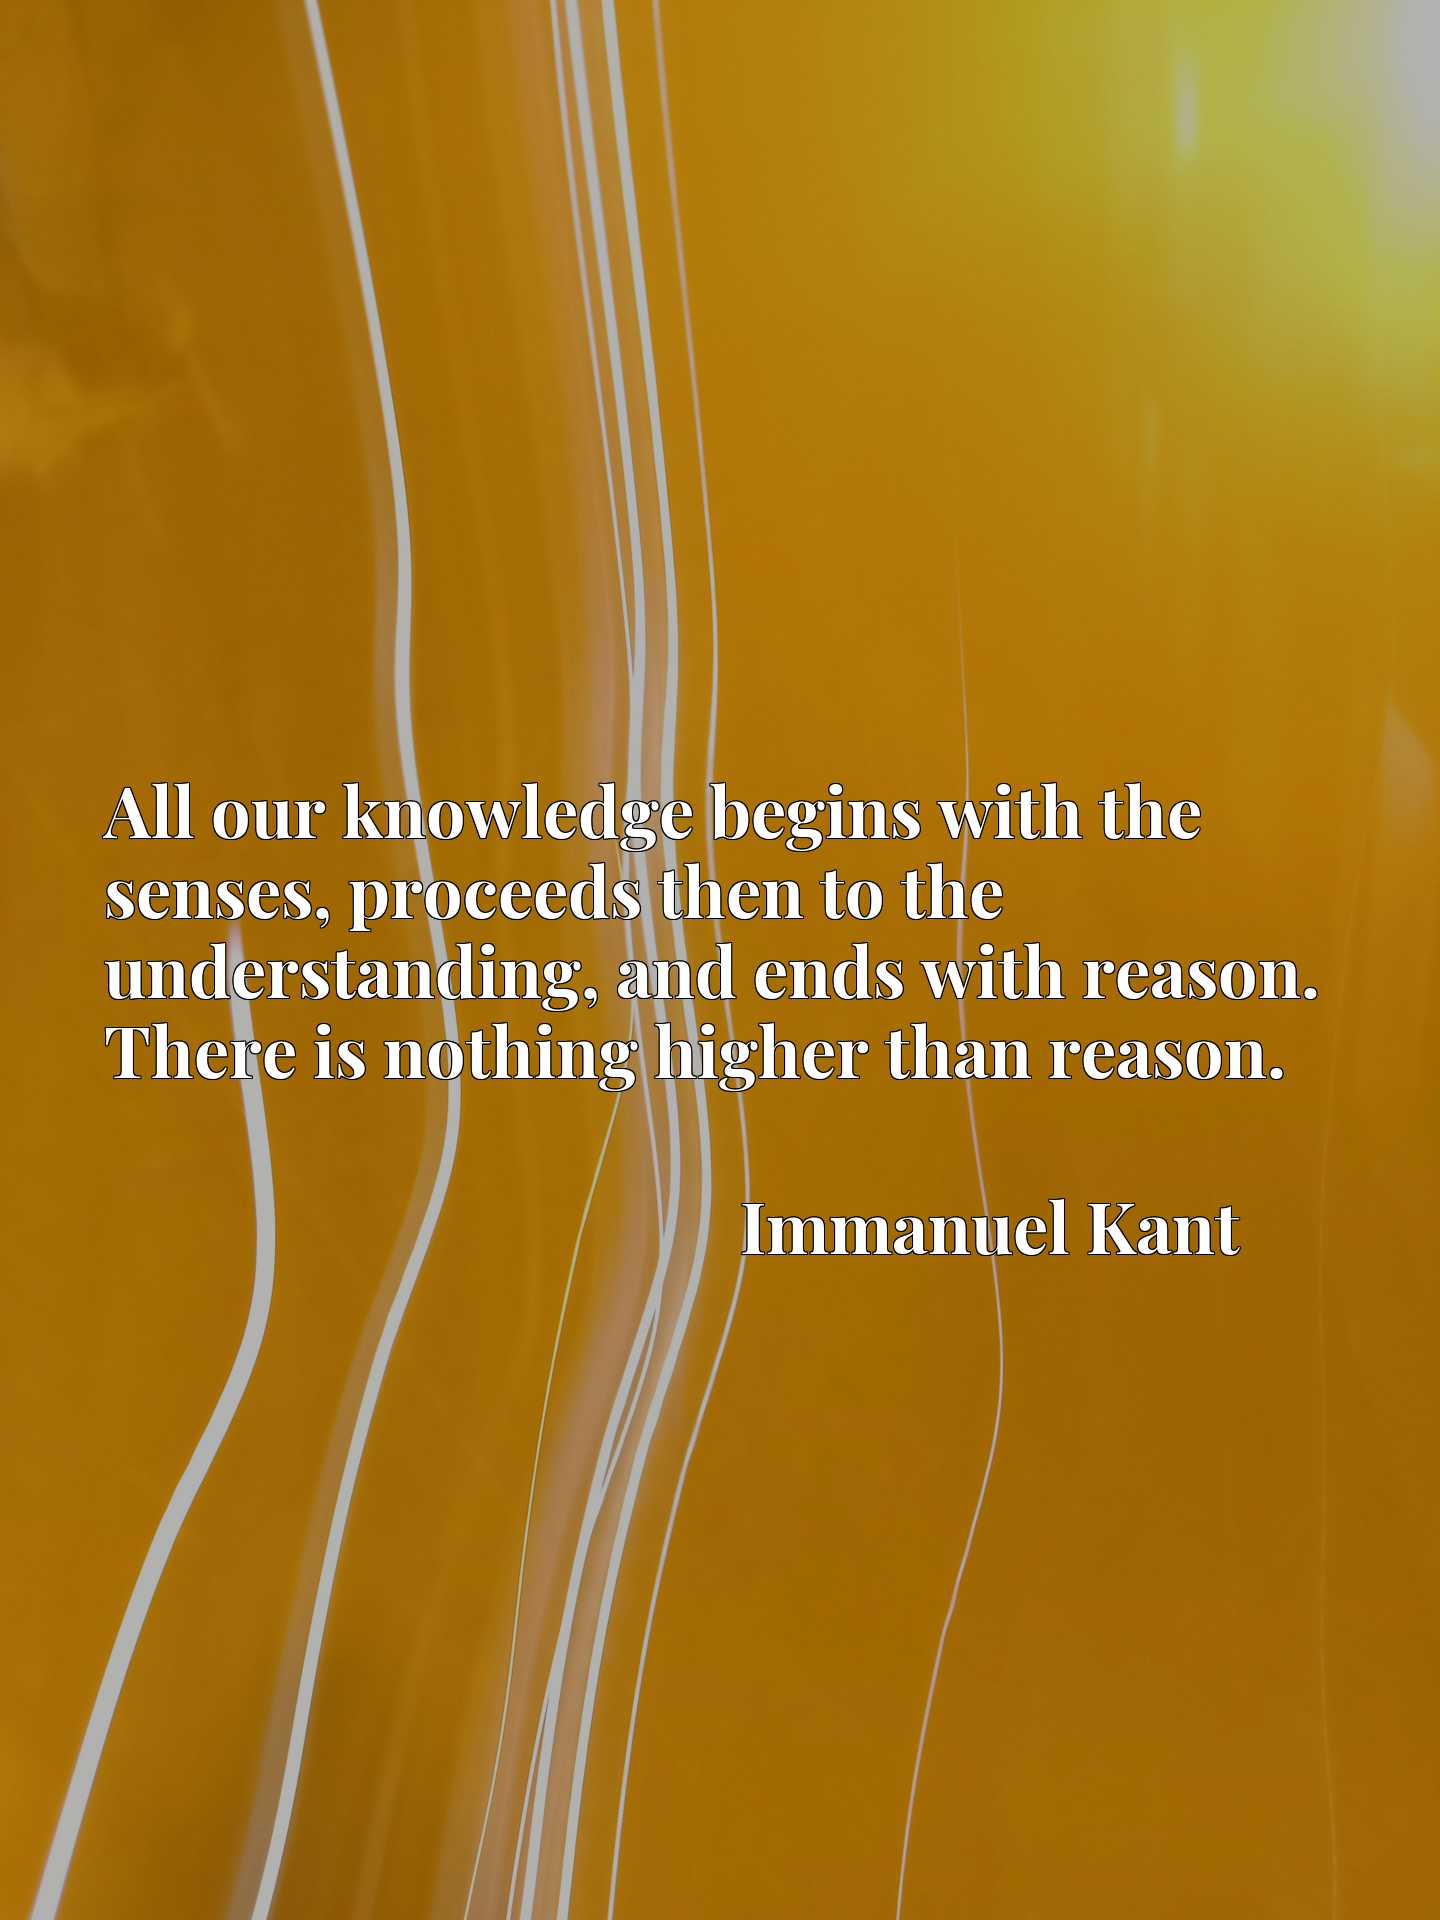 Quote Picture :All our knowledge begins with the senses, proceeds then to the understanding, and ends with reason. There is nothing higher than reason.